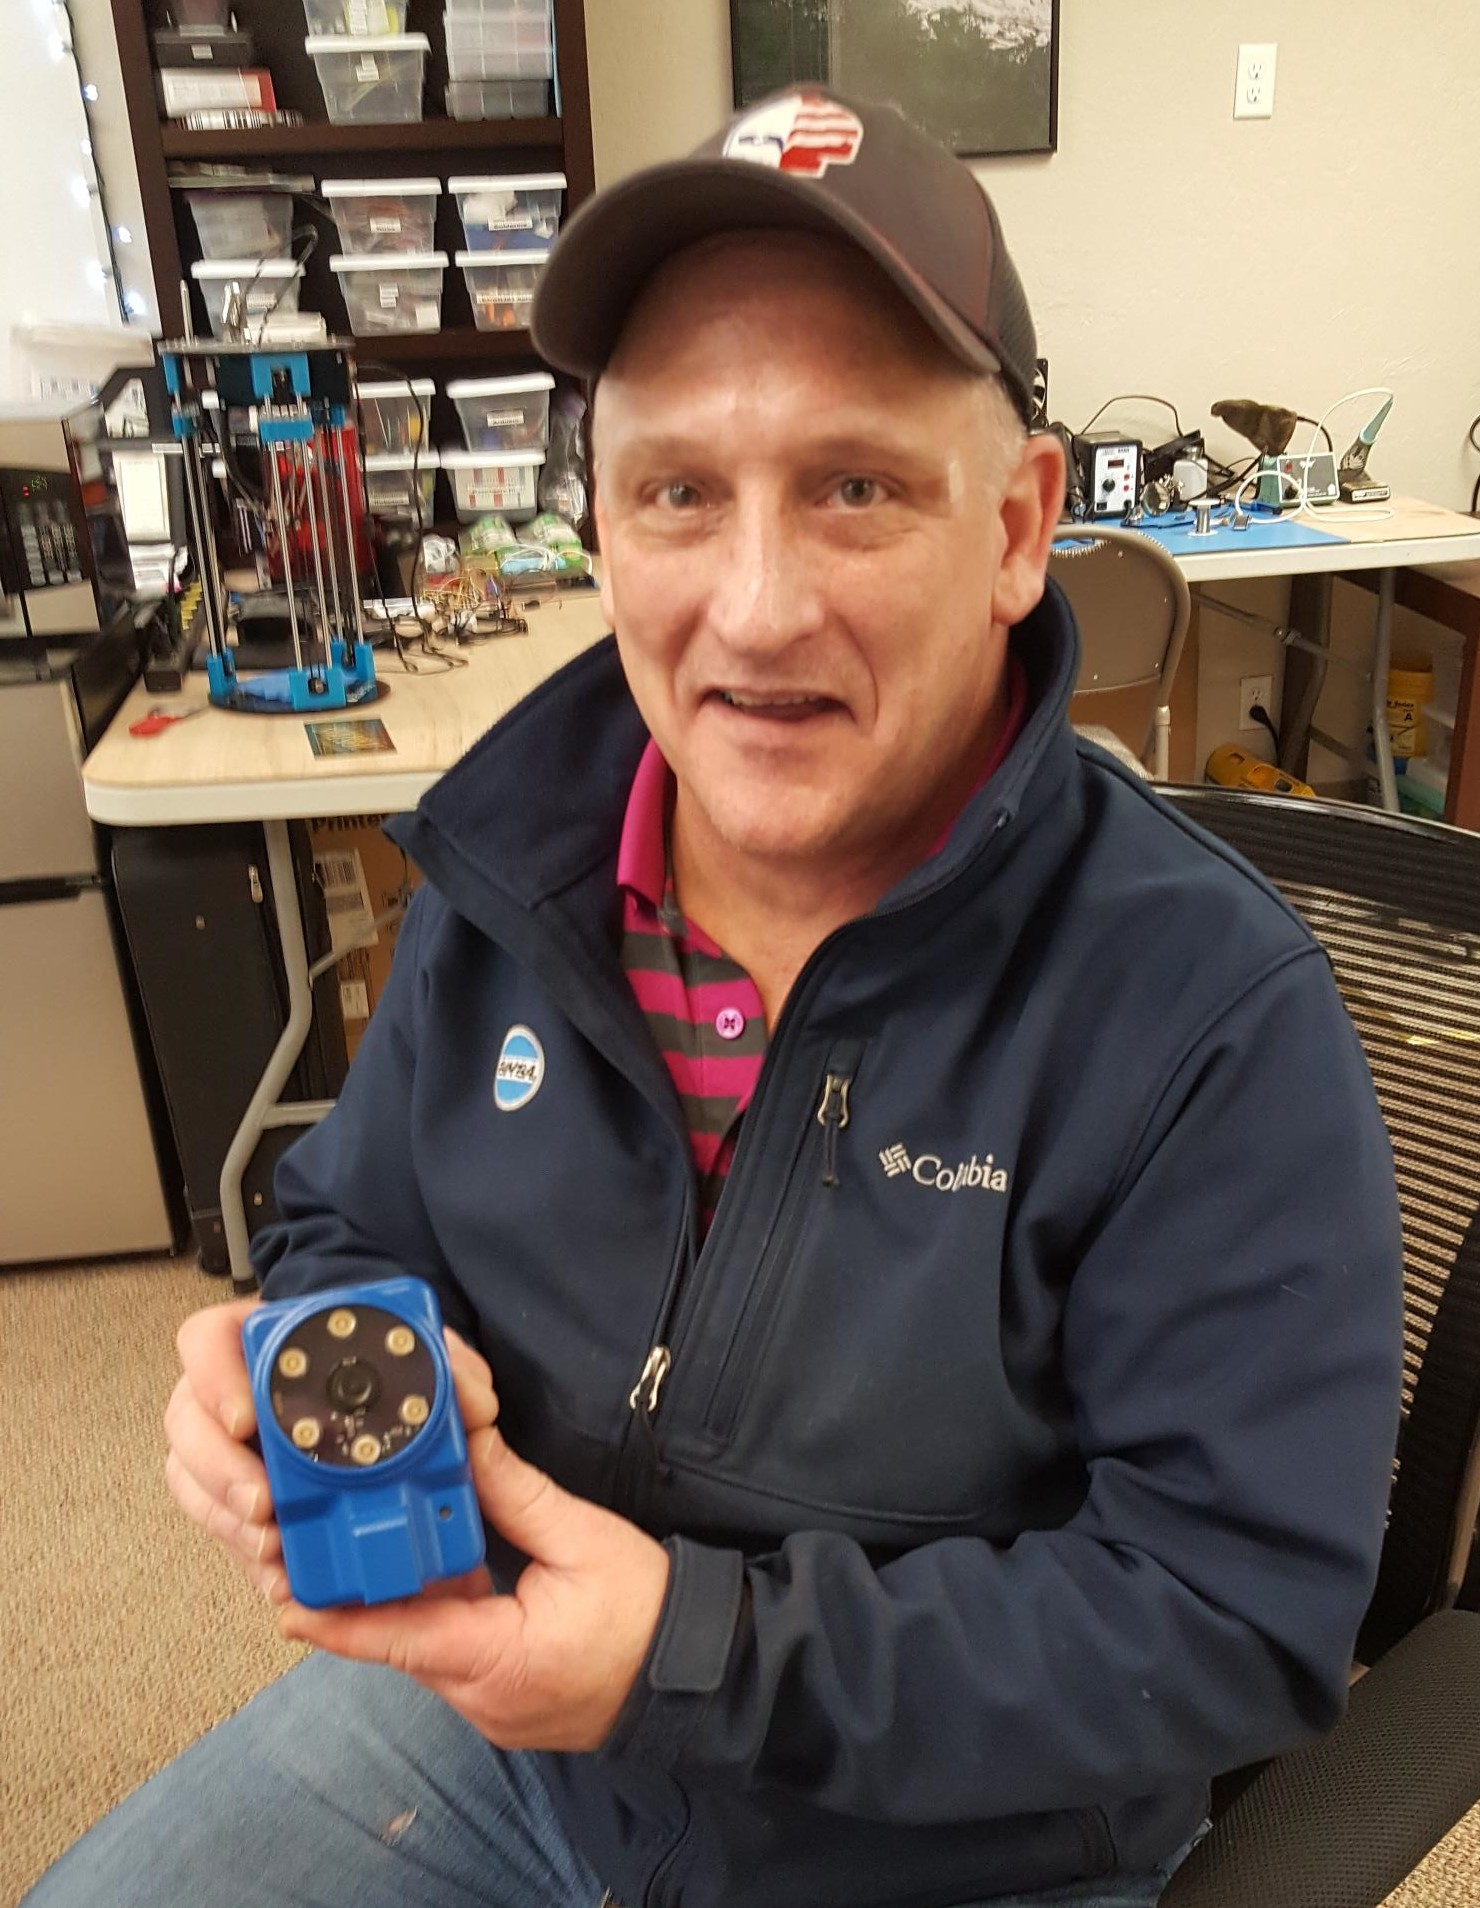 - Joe Schwindt, PE, is an applications engineer with Buchanan Automation, specializing in industrial robot applications in packaging and manufacturing. His advice has been very helpful, enhancing our understanding of the market and confirming we are on the right path. On a recent visit we gave him a personal demo of our VIM-201 camera mounted on a robot performing visual servoing.